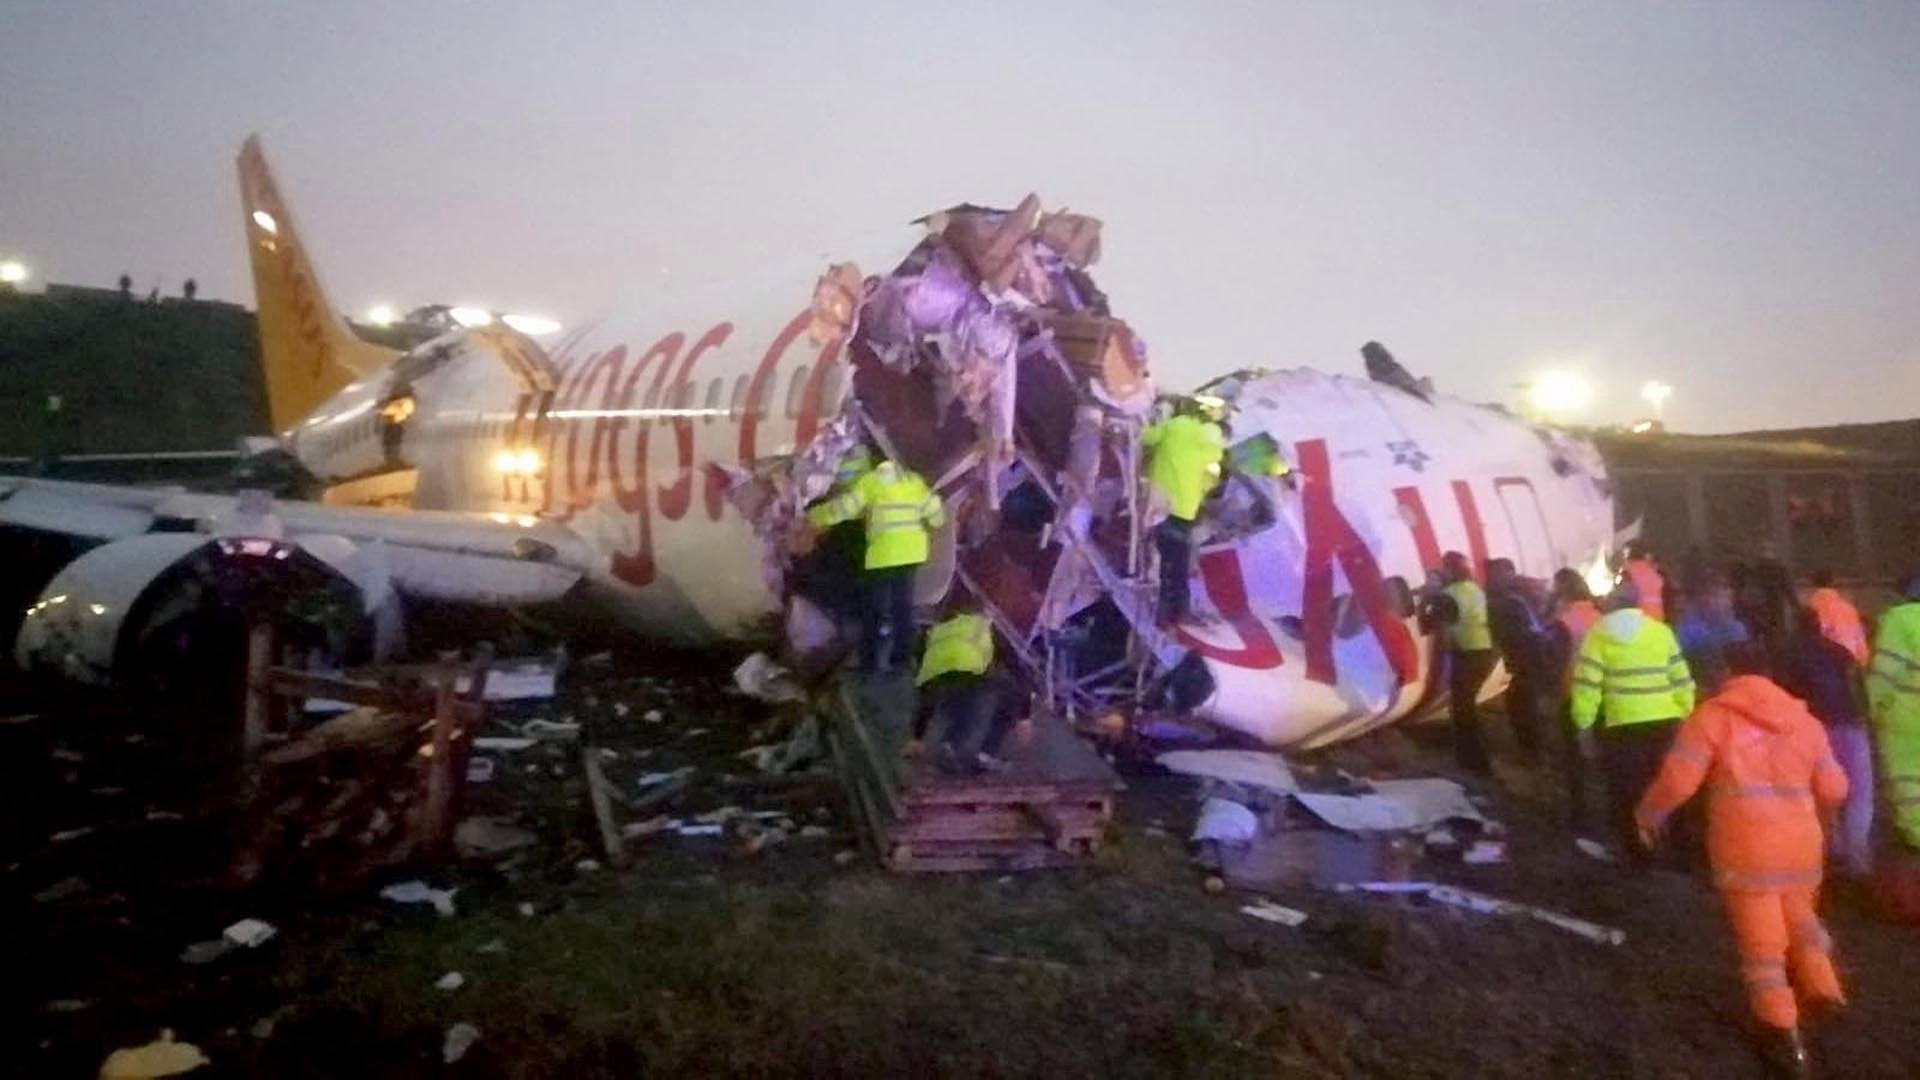 The passenger plane broke into two after skidding off the runway in Turkey on Feb. 5, 2020. (Credit: Handout/Istanbul Security Directorate/Anadolu Agency/Getty Images)